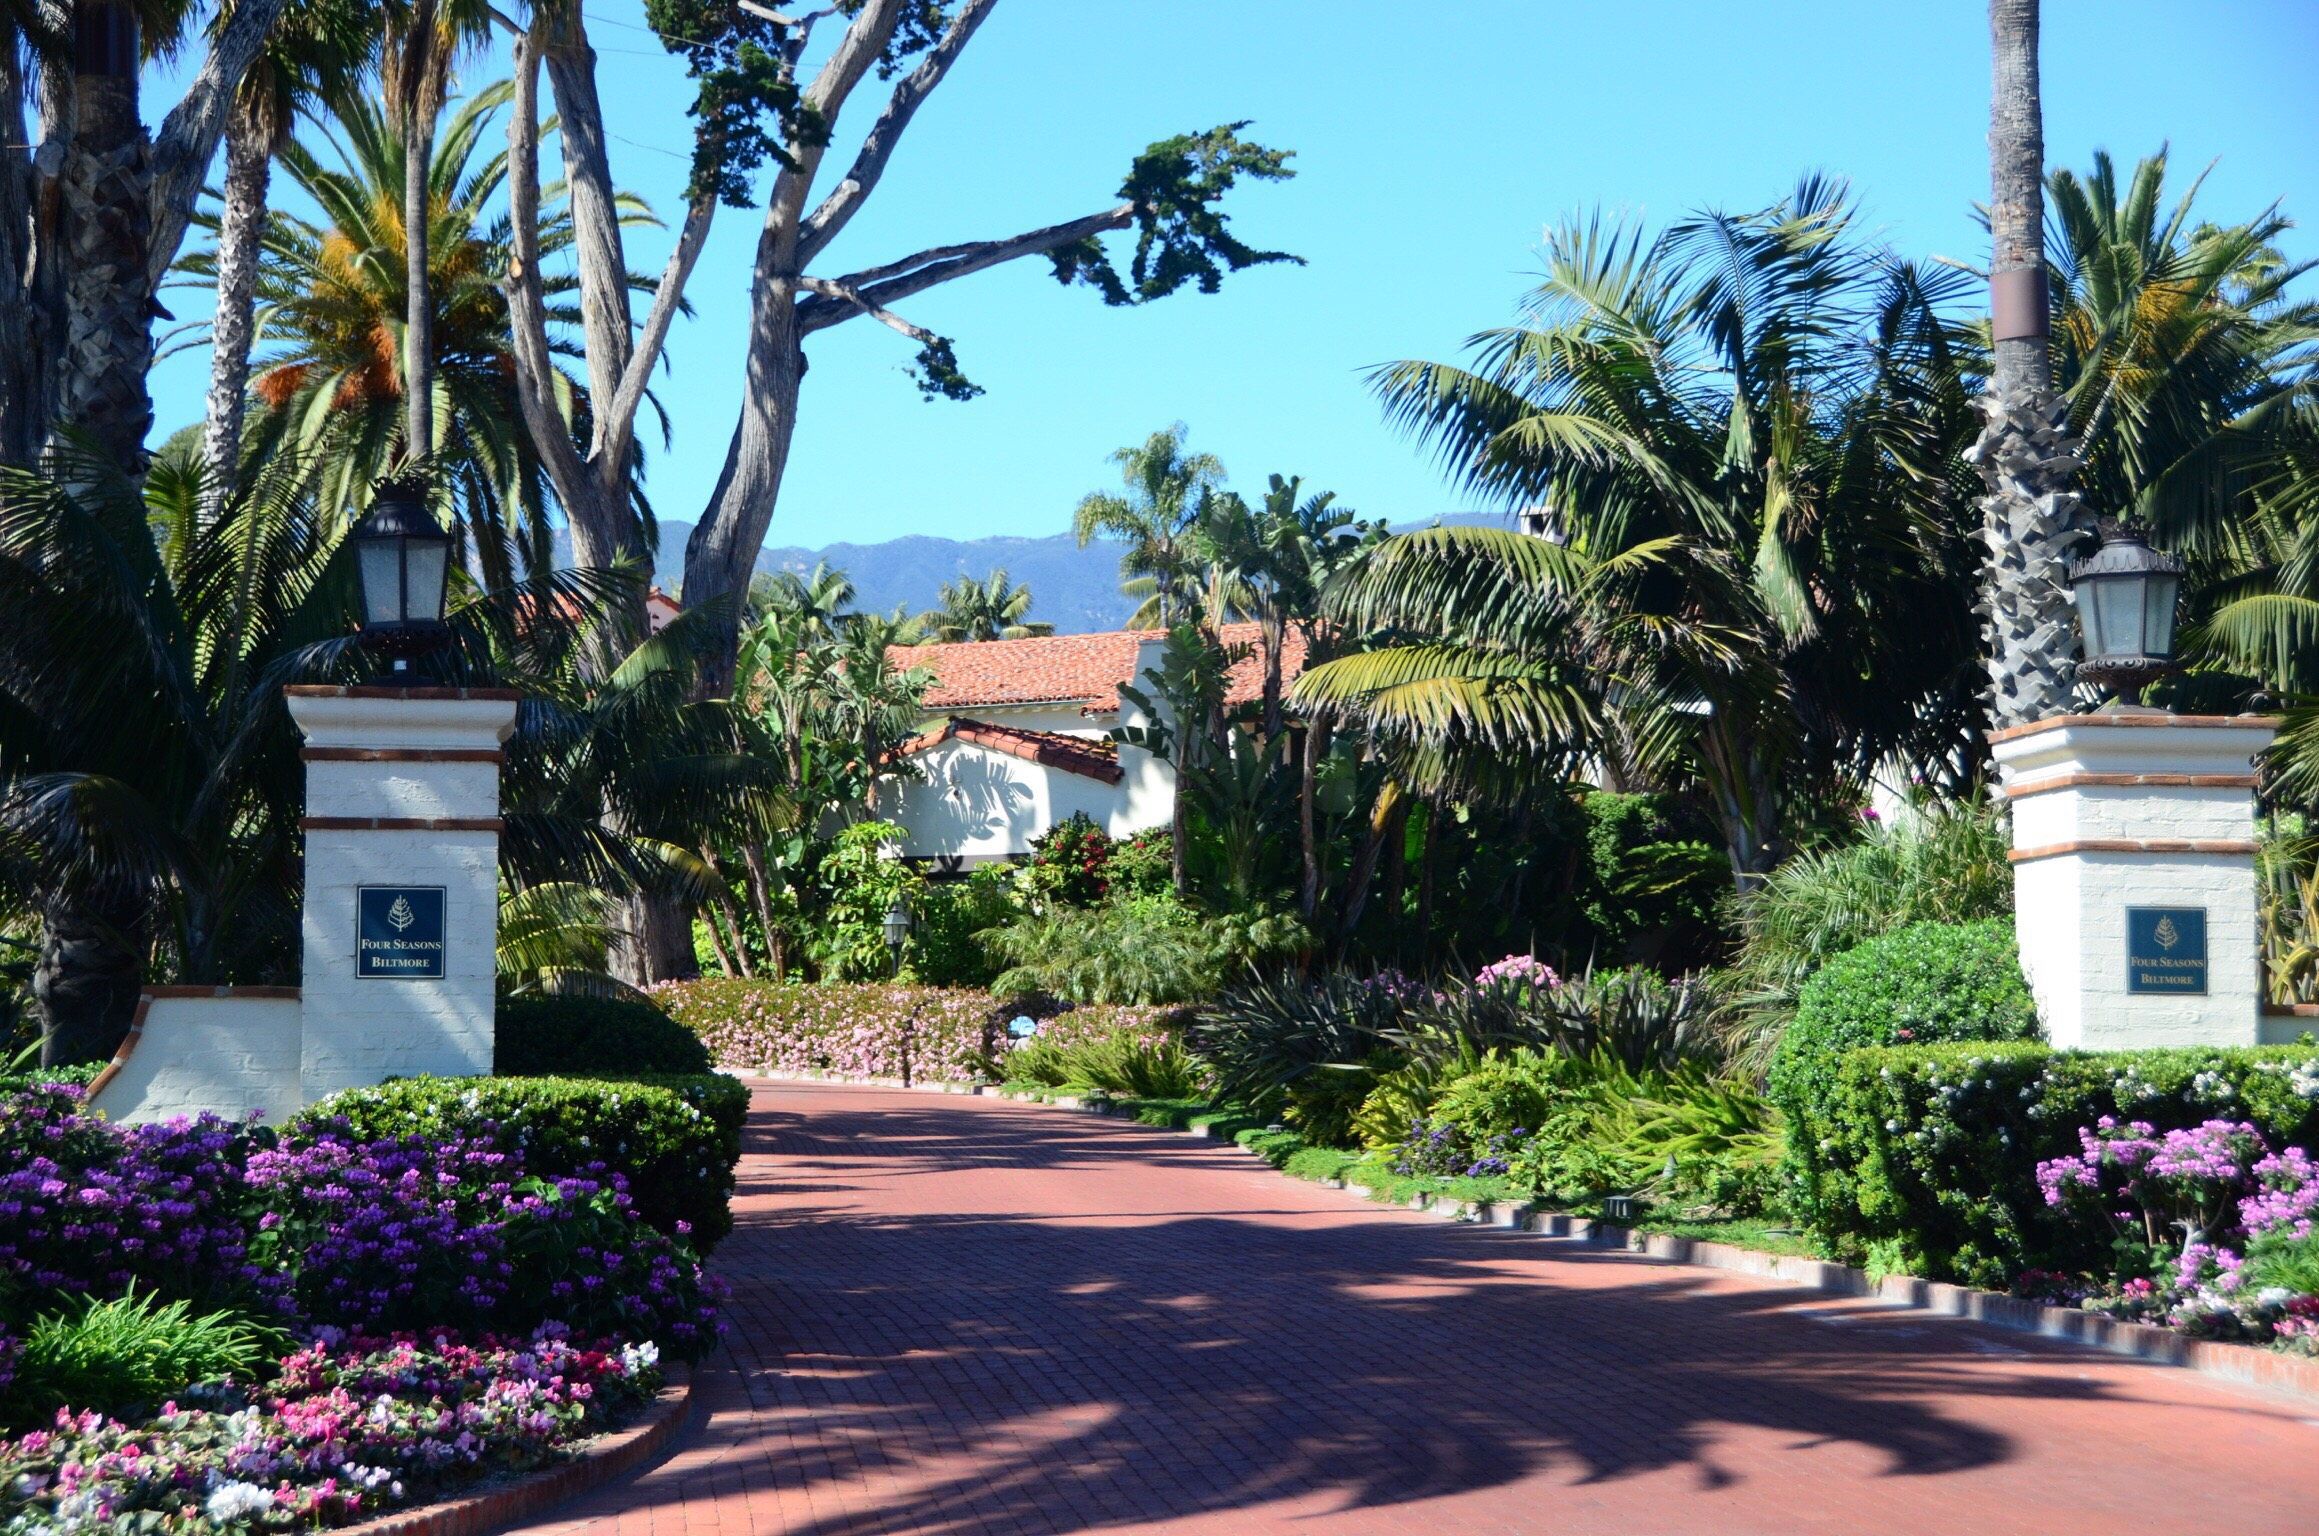 Four Seasons Resort The Biltmore Santa Barbara Entrance